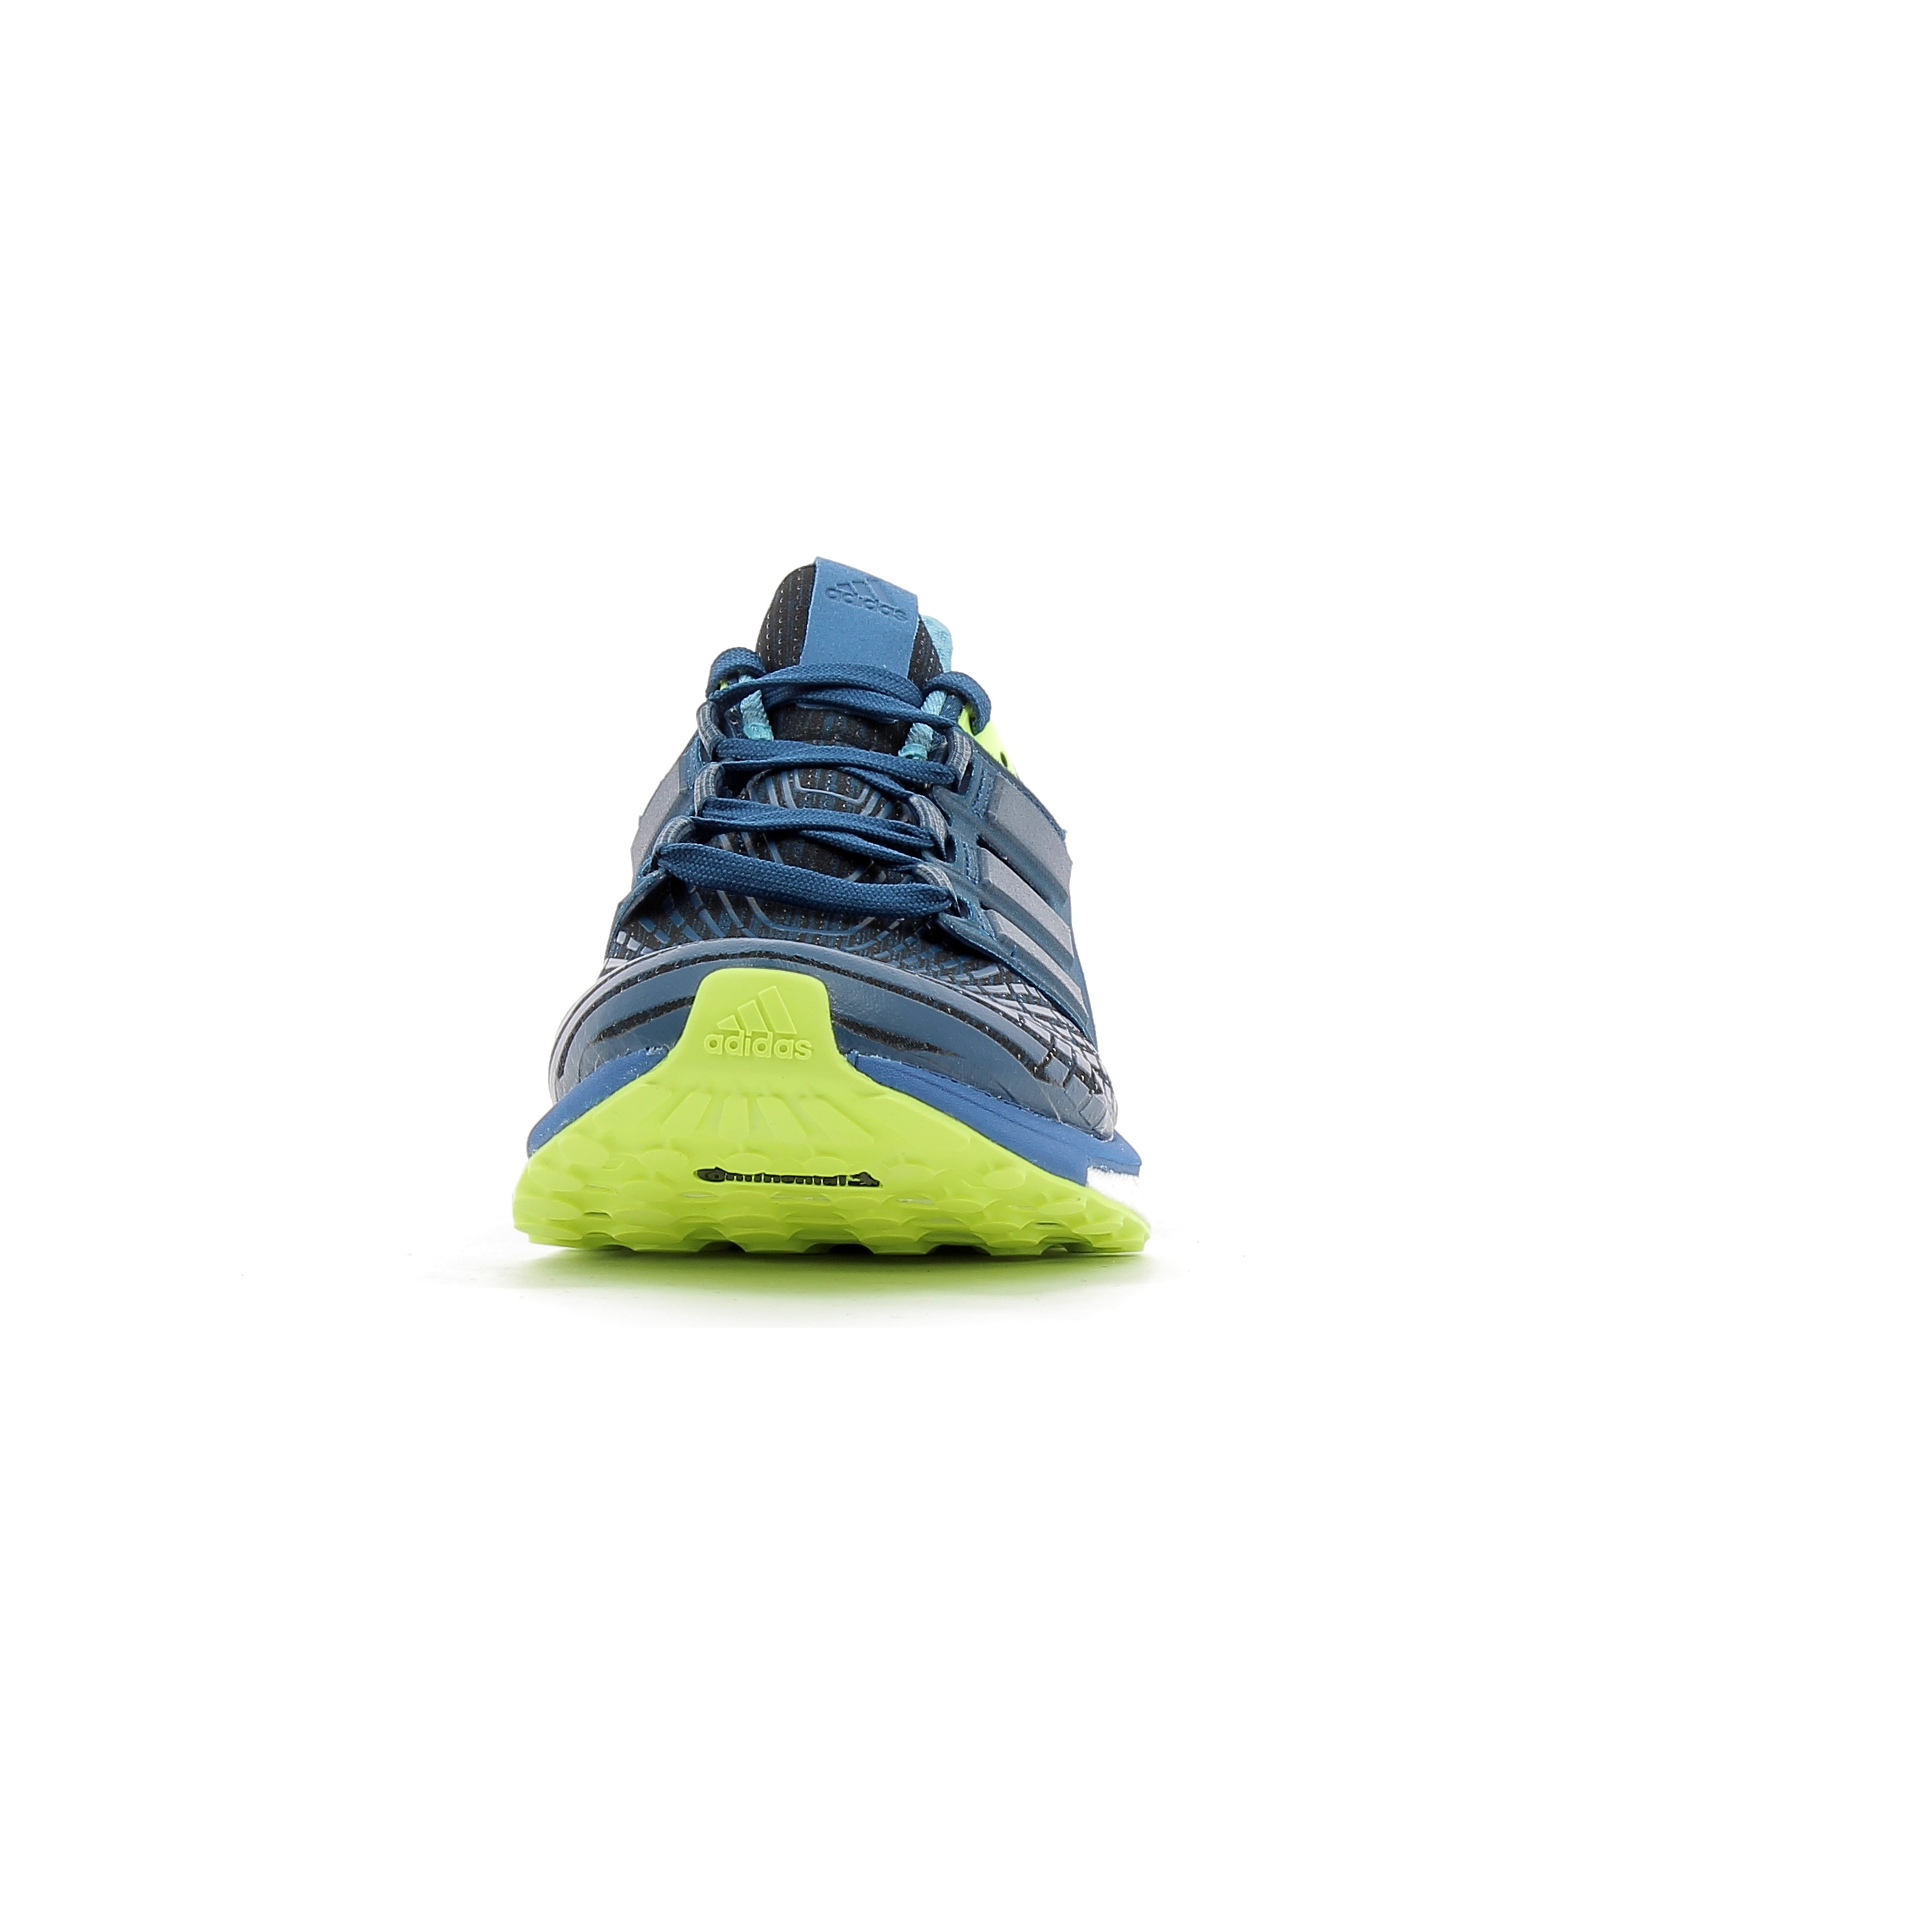 finest selection 71ab9 11bc7 Chaussures de running Adidas Performance Energy Boost M